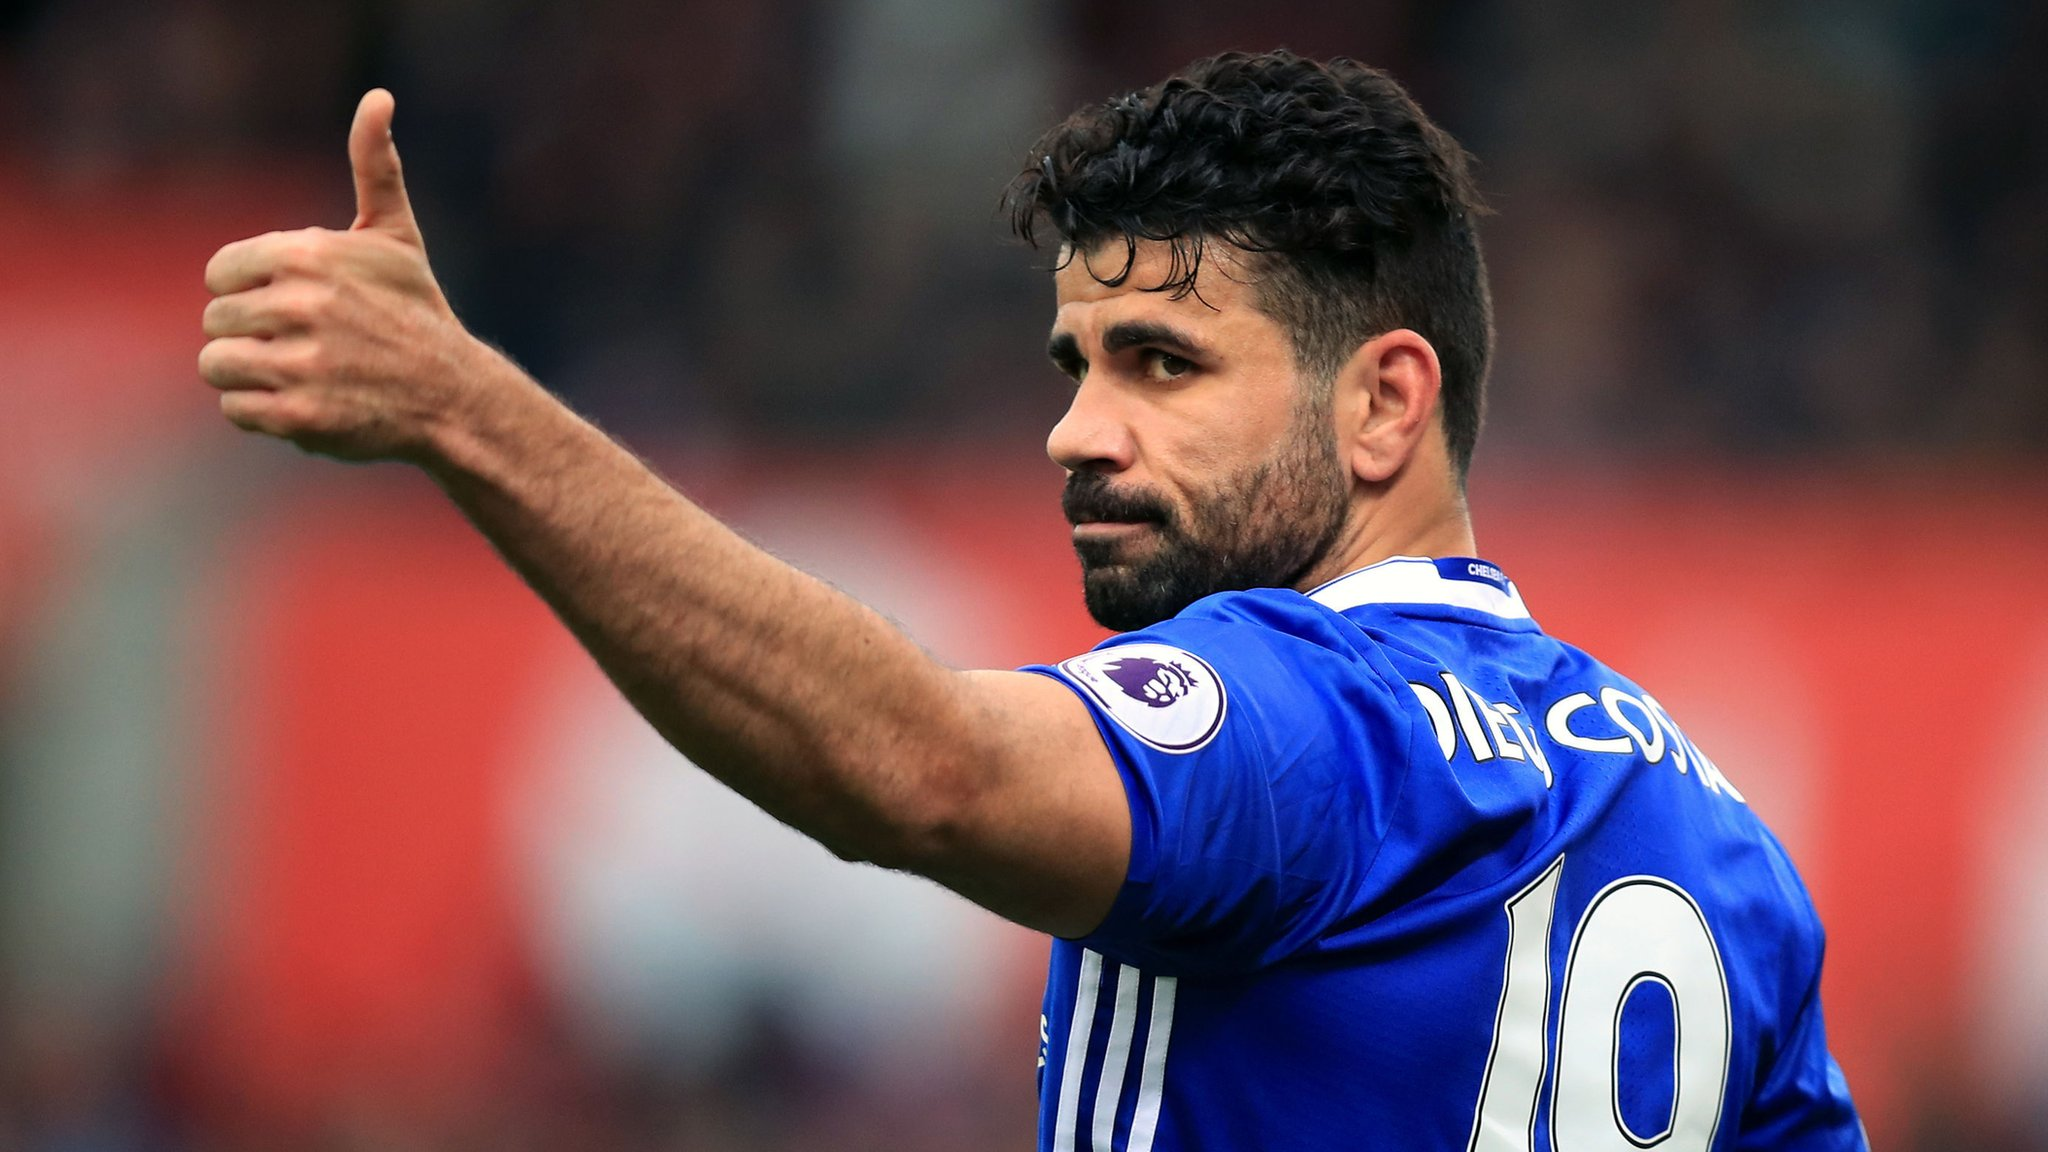 Diego Costa: Chelsea agree terms with Atletico Madrid to sell striker